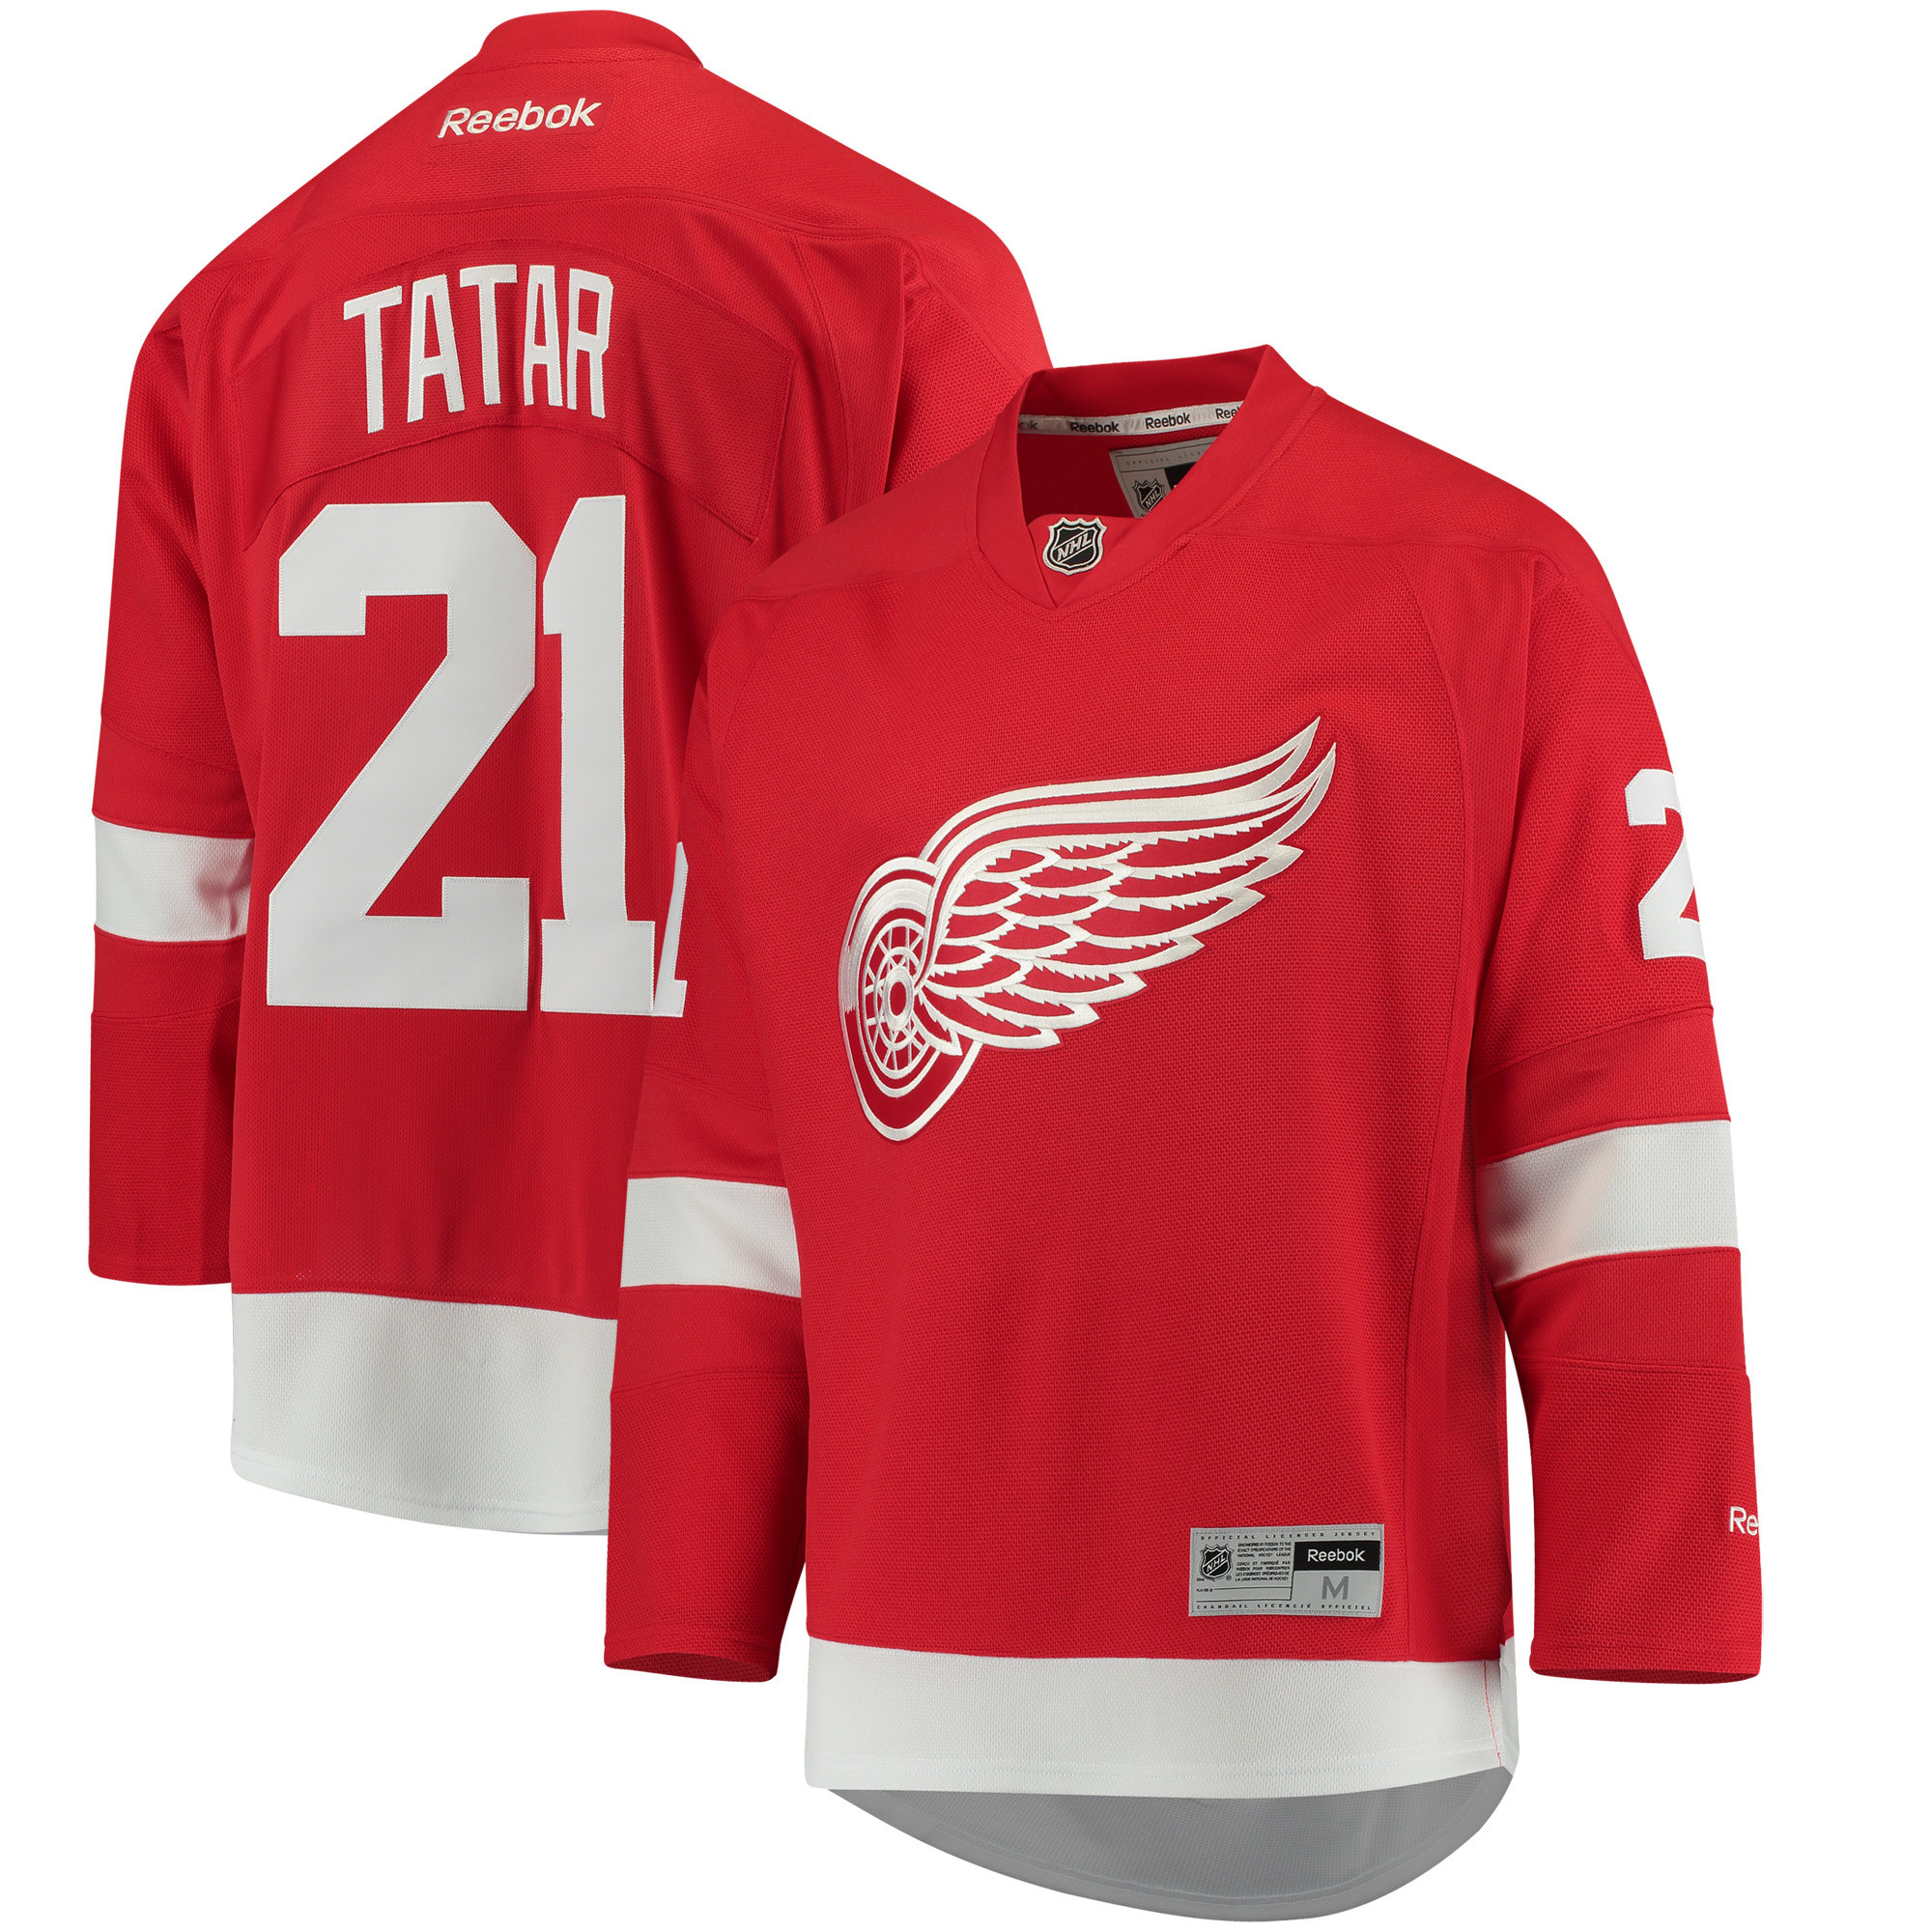 Tomas Tatar Detroit Red Wings NHL Reebok Red Official Premier Home Jersey For Men